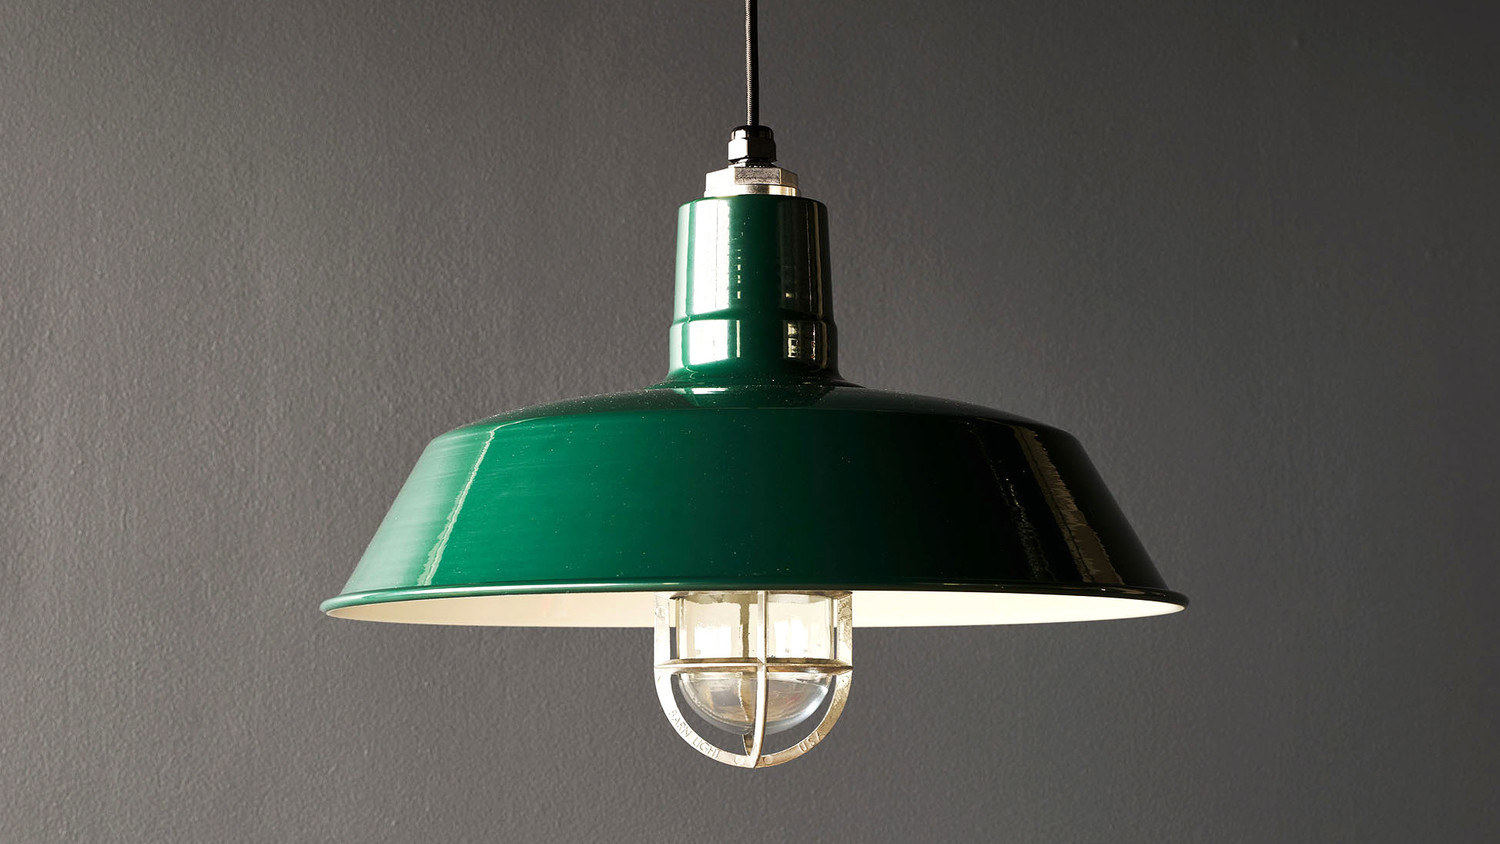 Don't Miss This Deal: Fennia 1 Light Single Cylinder Pendant Within Fennia 1 Light Single Cylinder Pendants (Gallery 14 of 30)